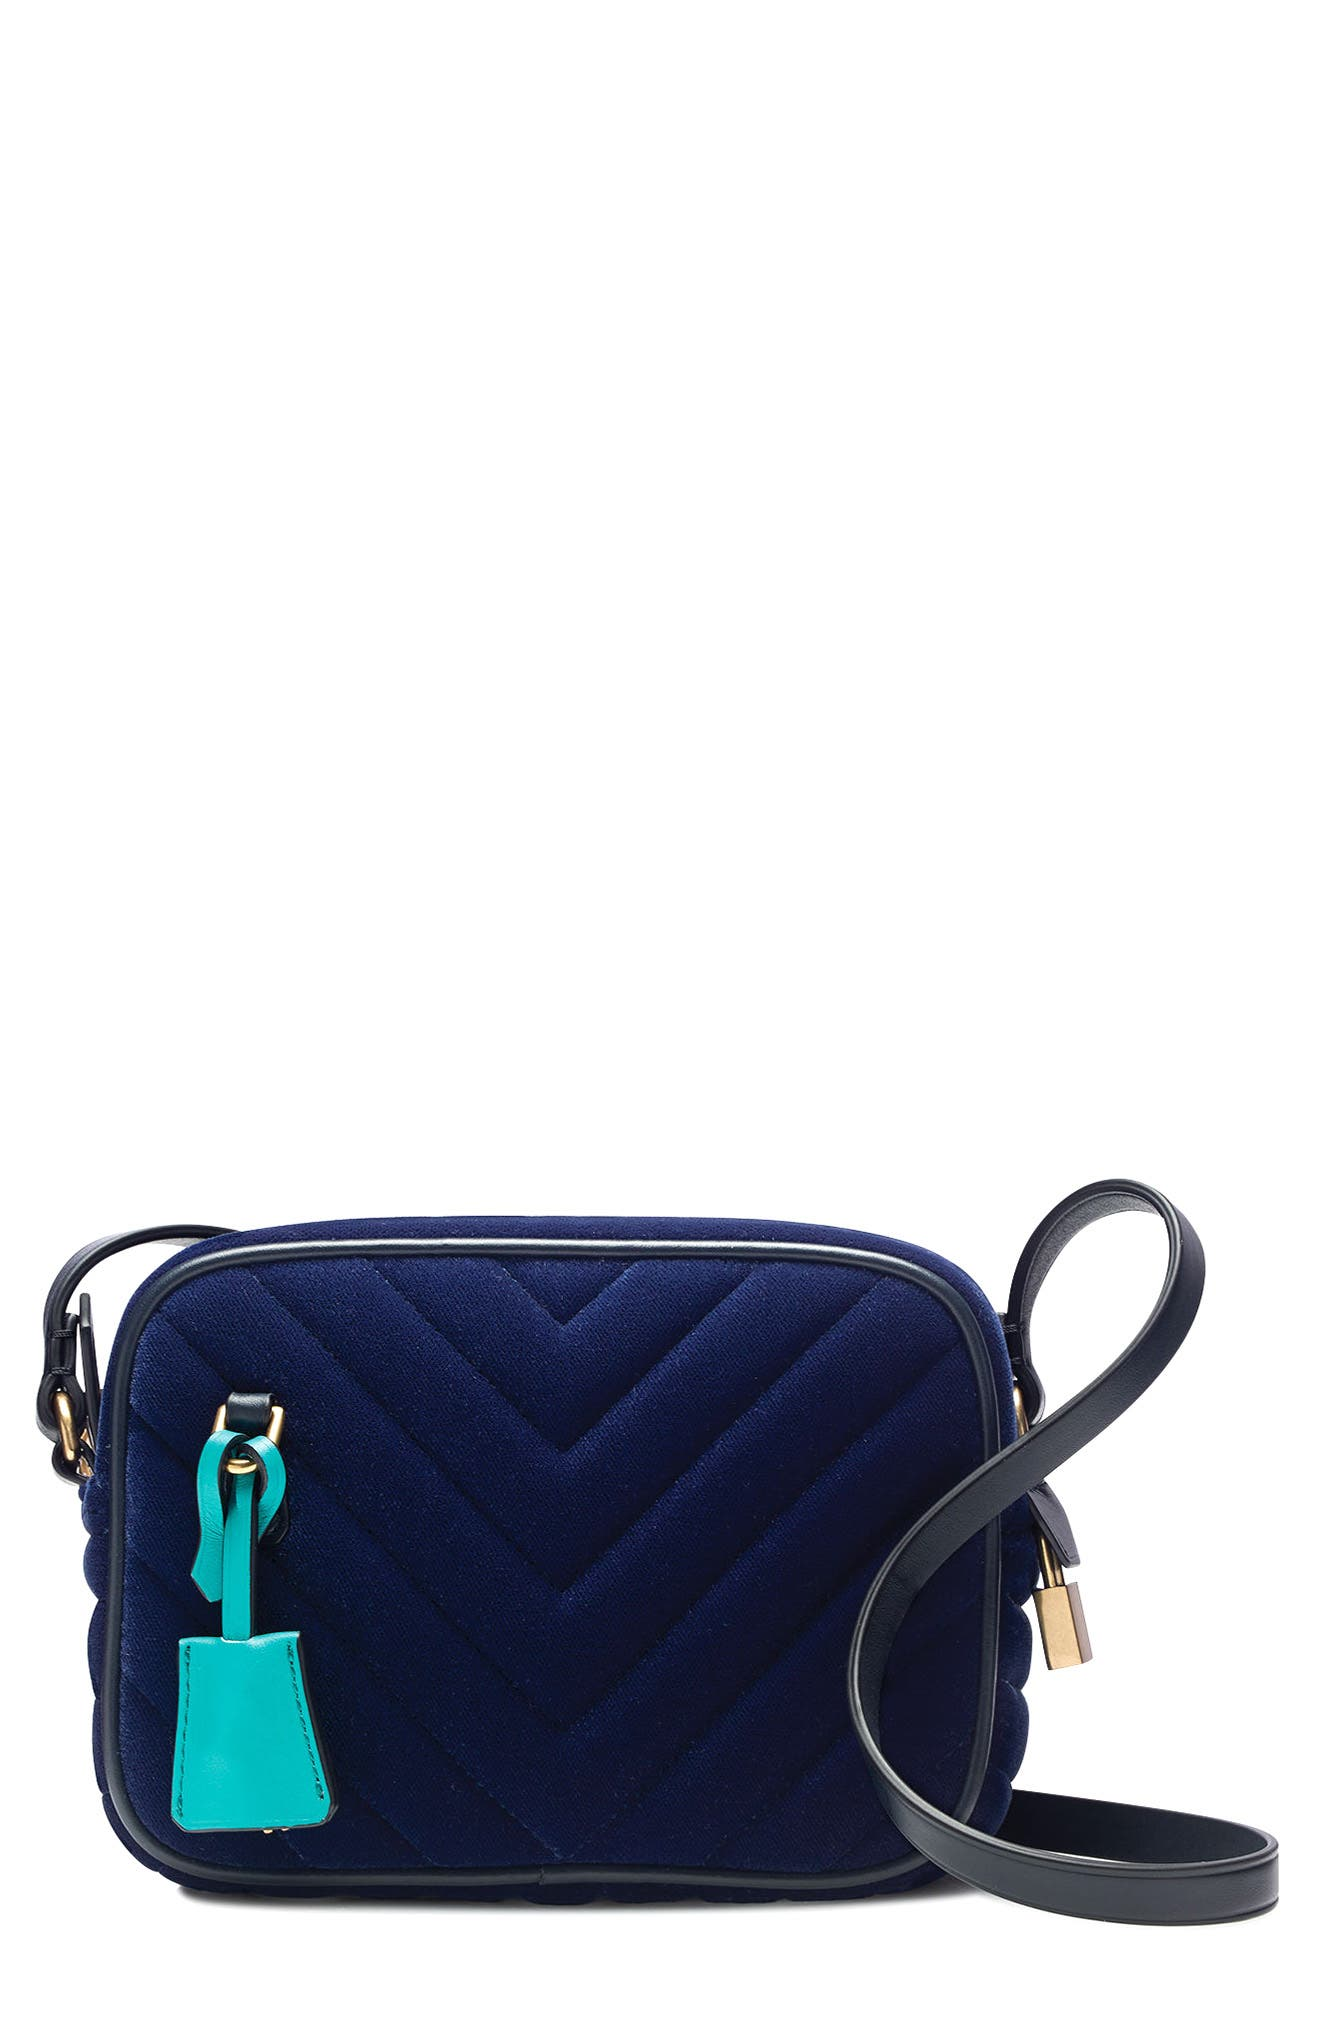 Mini Velvet Signet Bag,                             Main thumbnail 1, color,                             Vivid Ink